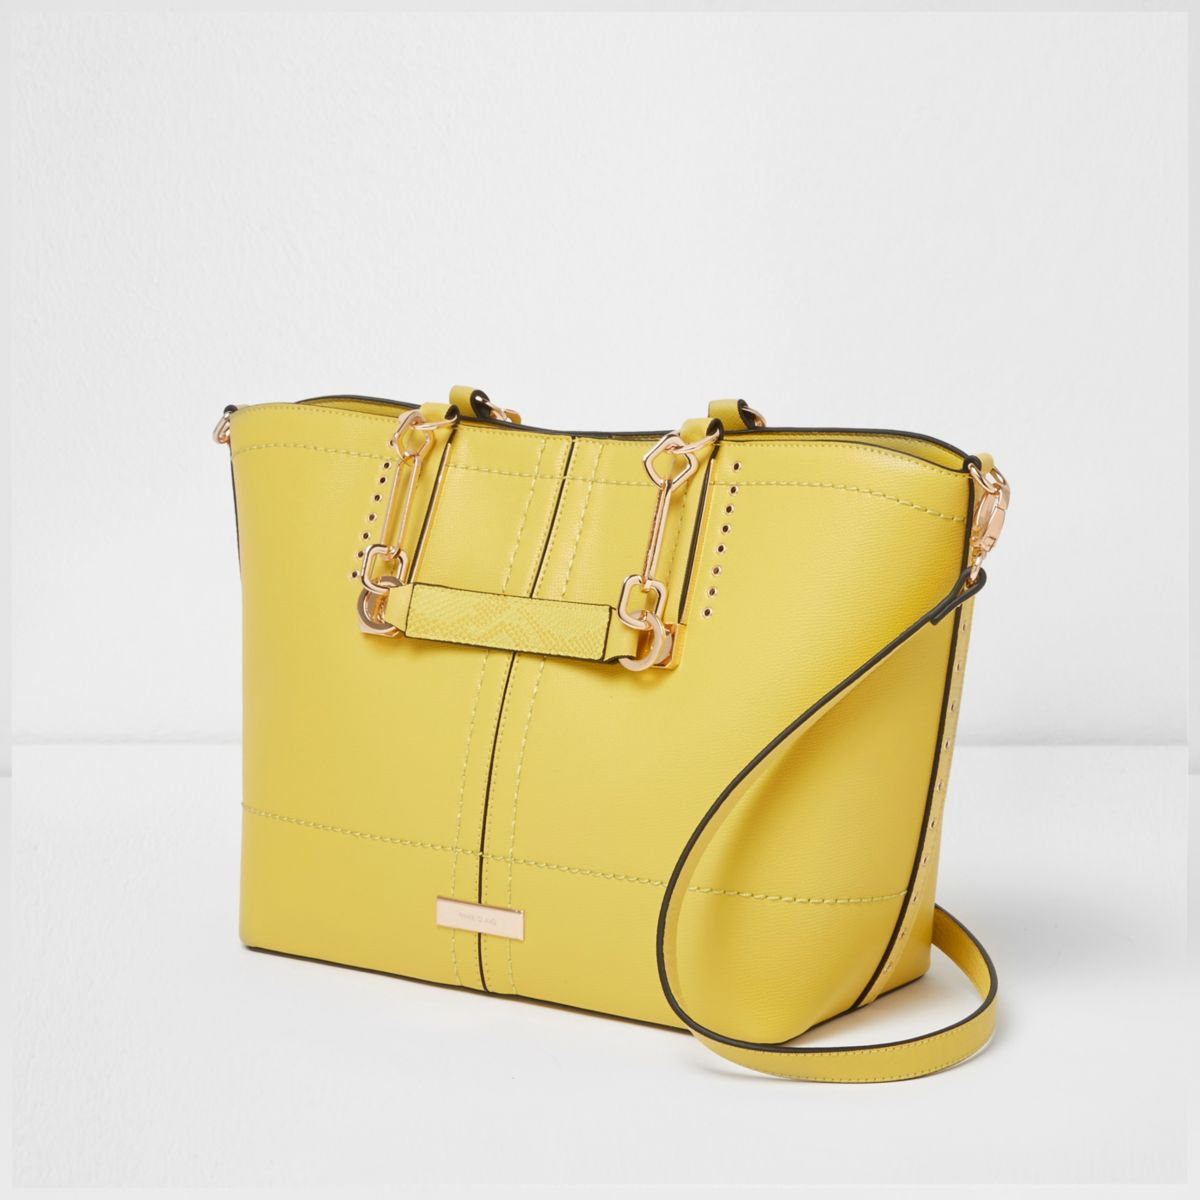 Yellow winged tote bag